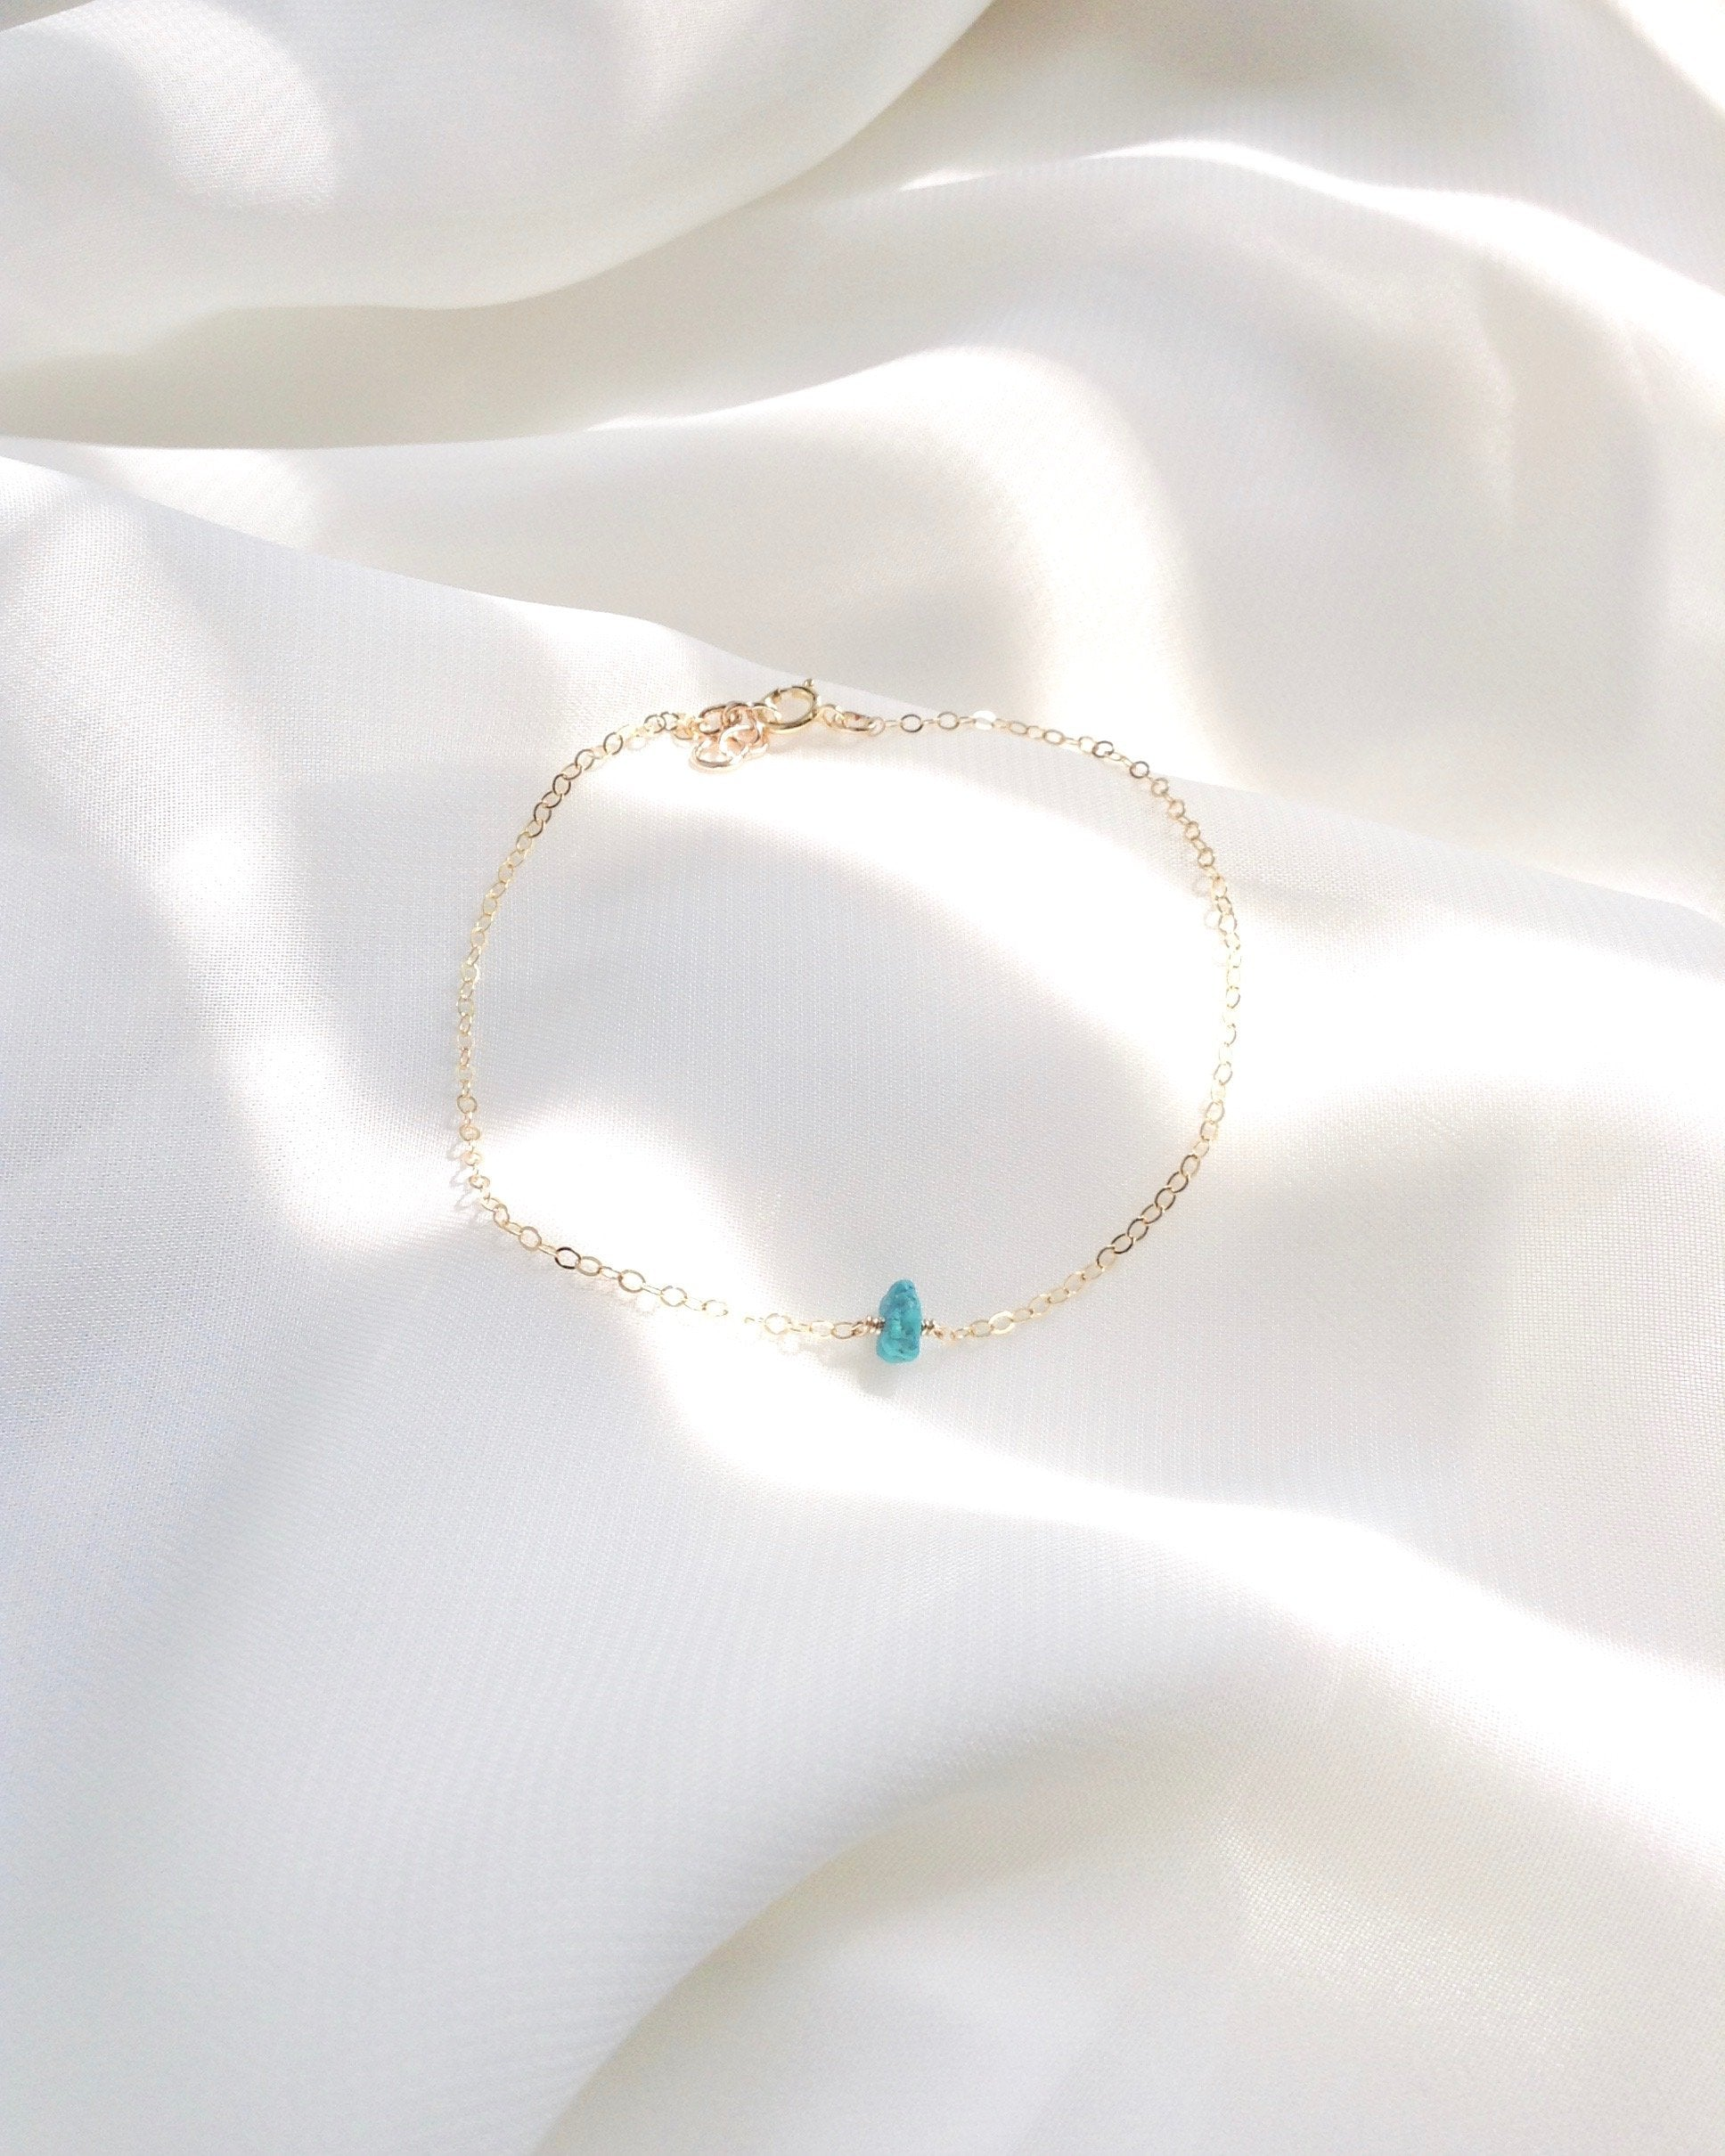 Dainty Turquoise Bracelet In Gold Filled or Sterling Silver | Delicate Minimalist Jewelry | IB Jewelry